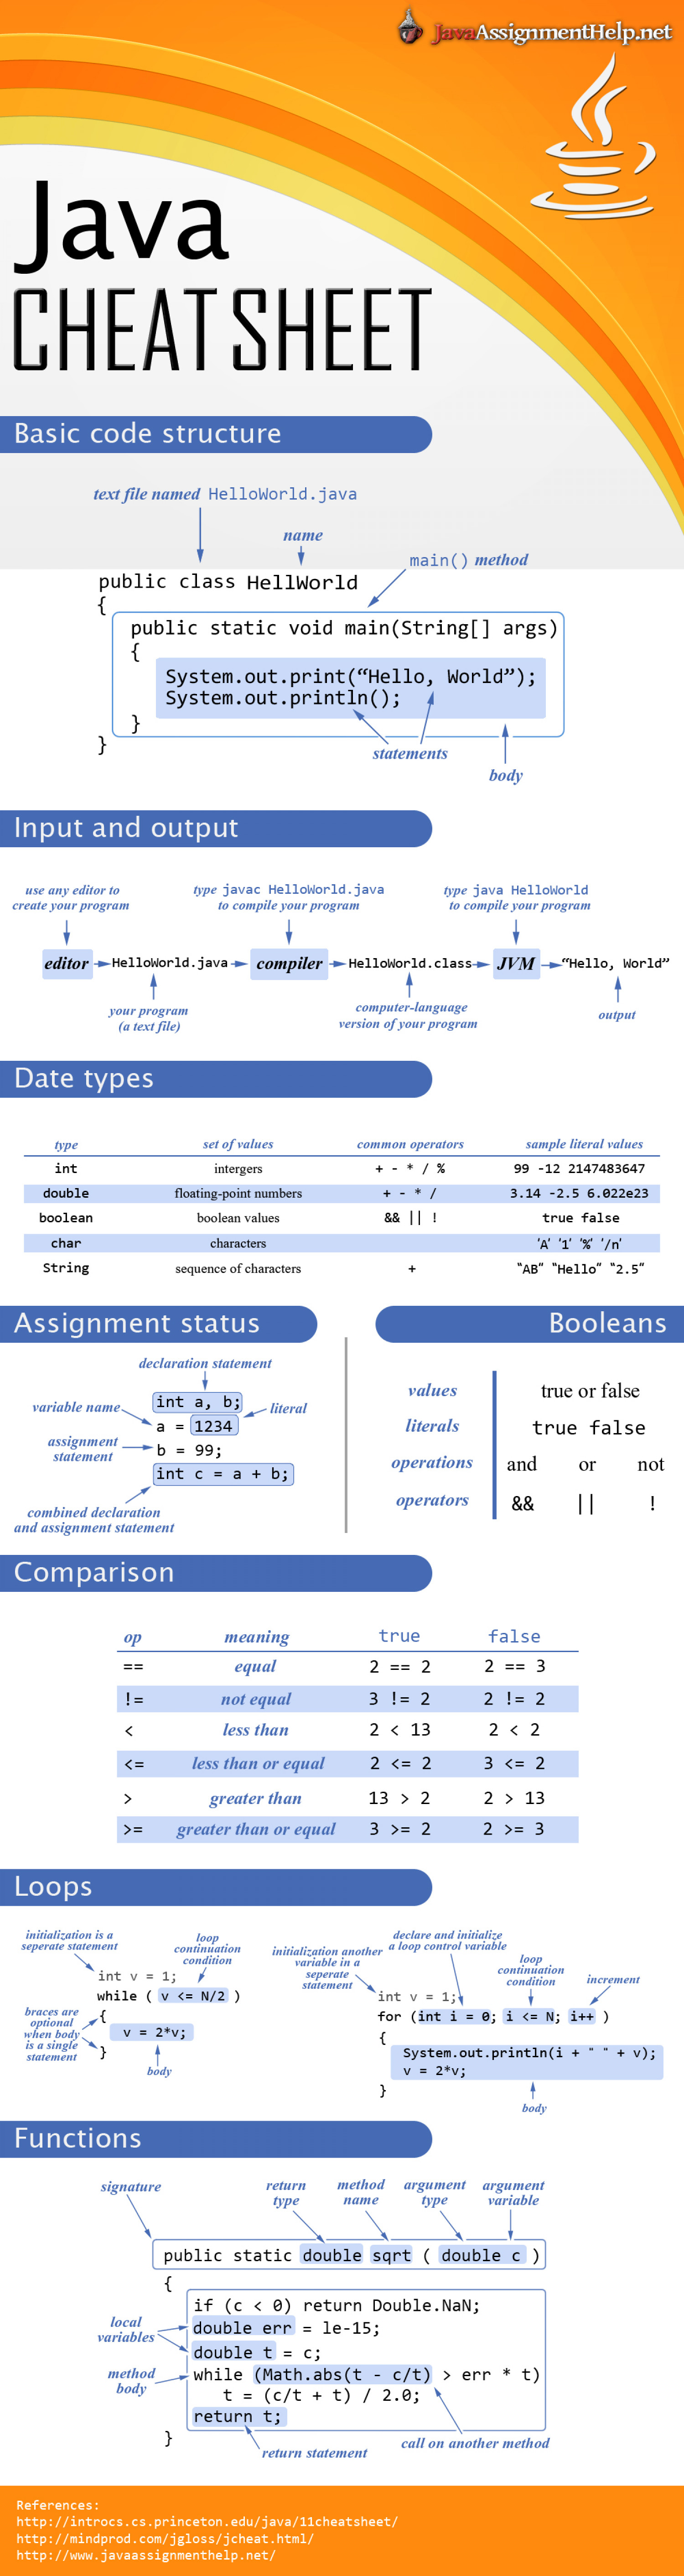 java cheat sheet ly java cheat sheet infographic